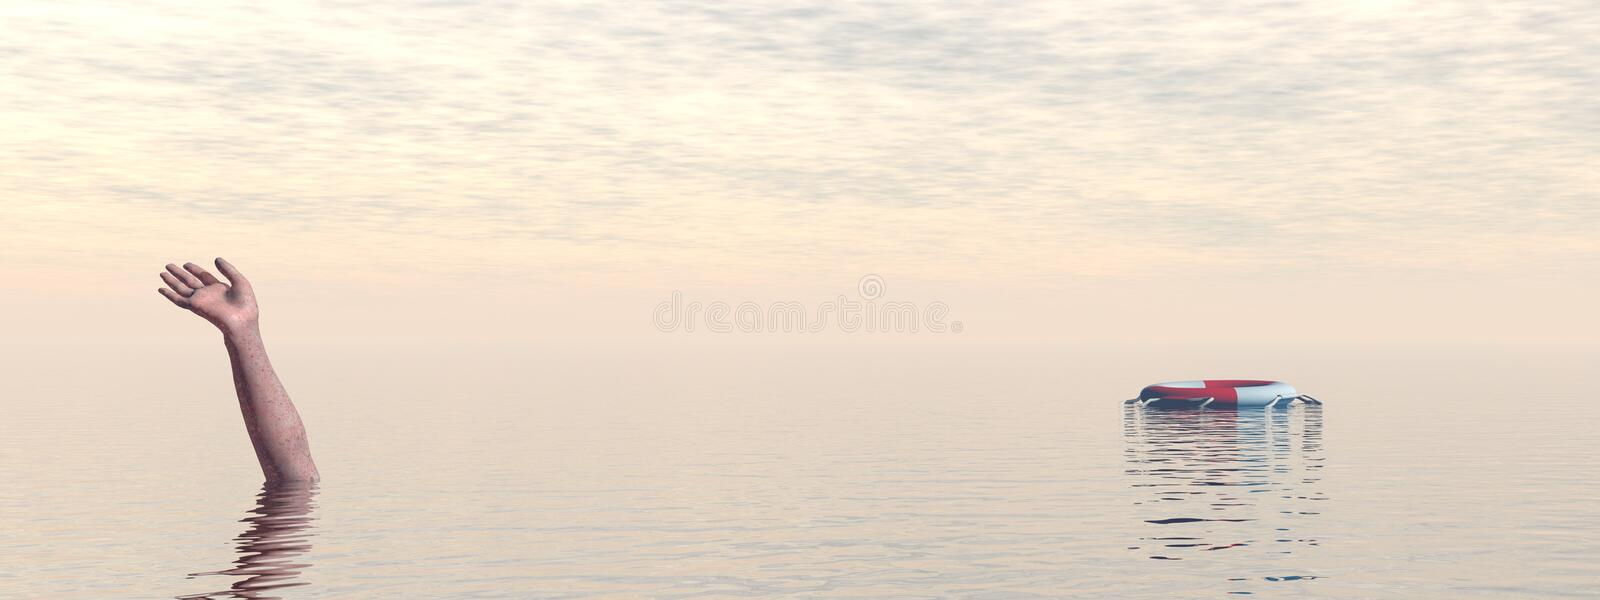 Drowning man`s hand in sea or ocean - 3D render royalty free illustration